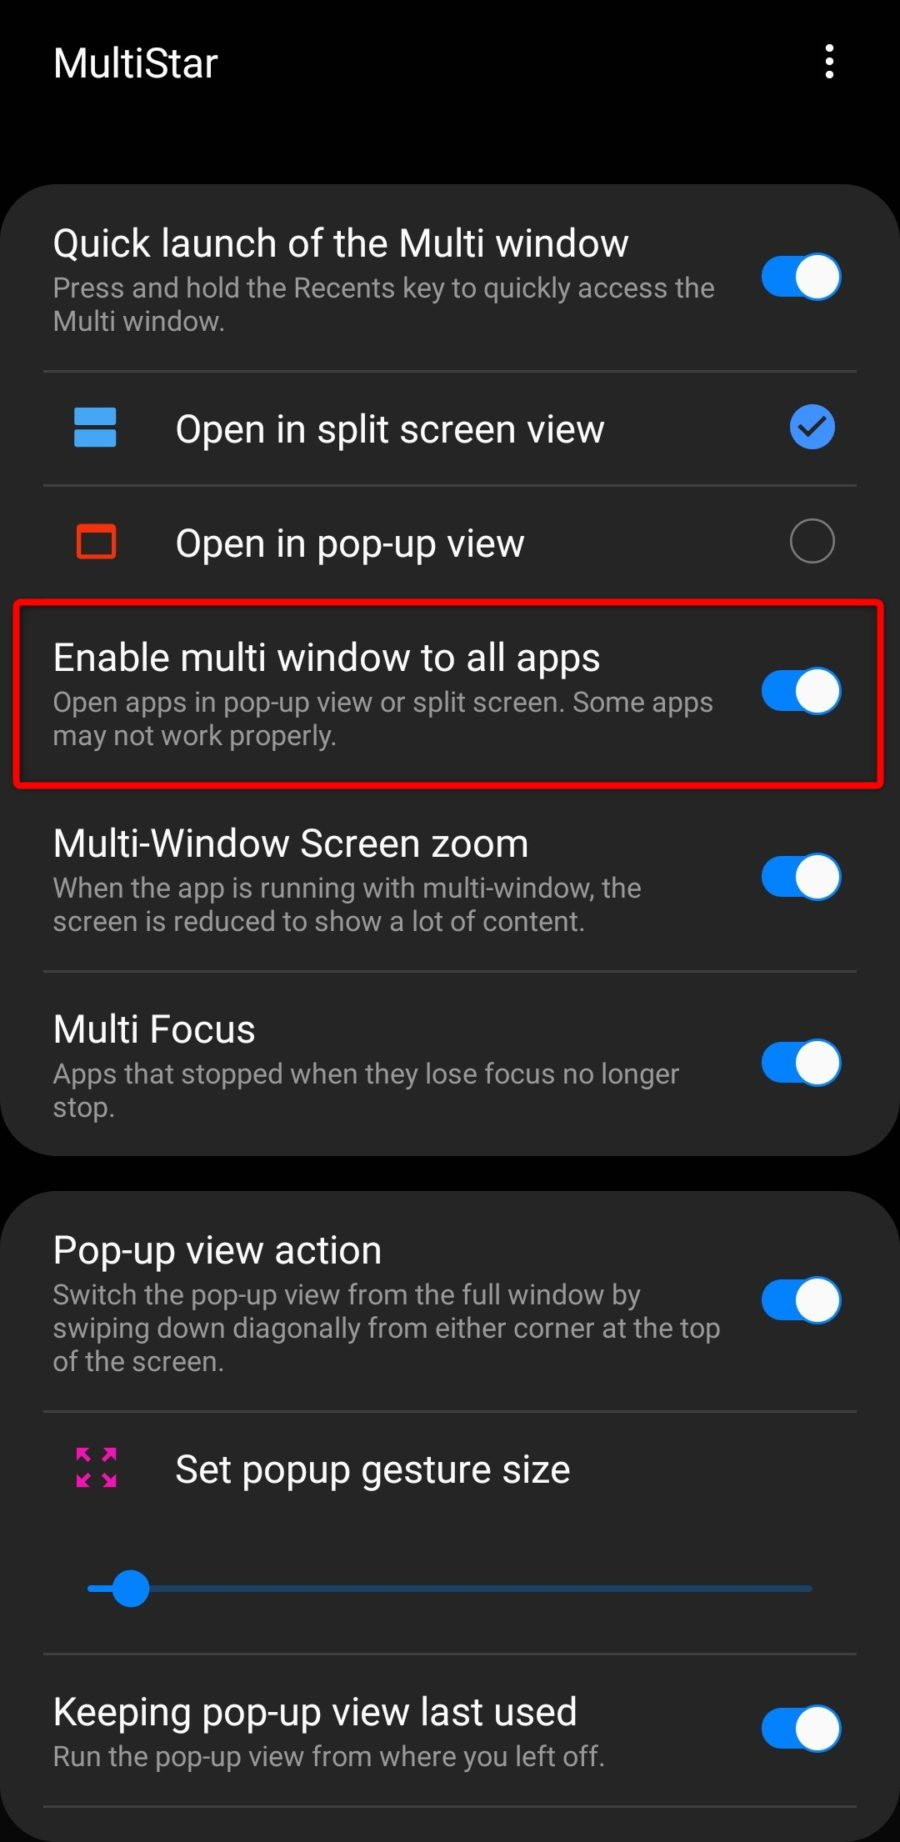 Enable multi window to all appsの設定